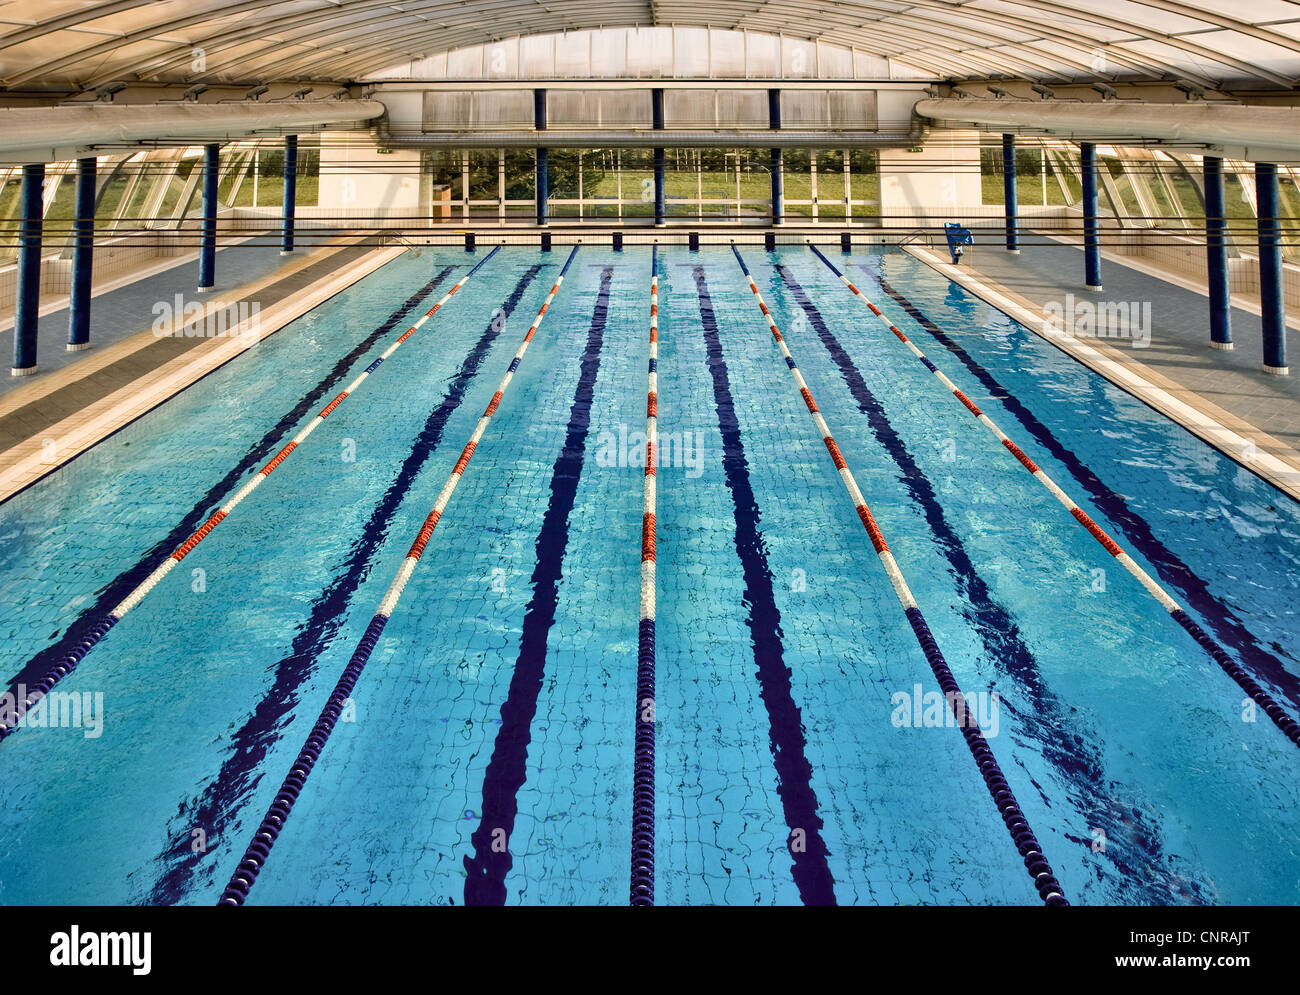 Overhead view of lanes of swimming pool stock photo royalty free image 47841776 alamy - Olympic swimming pool lanes ...